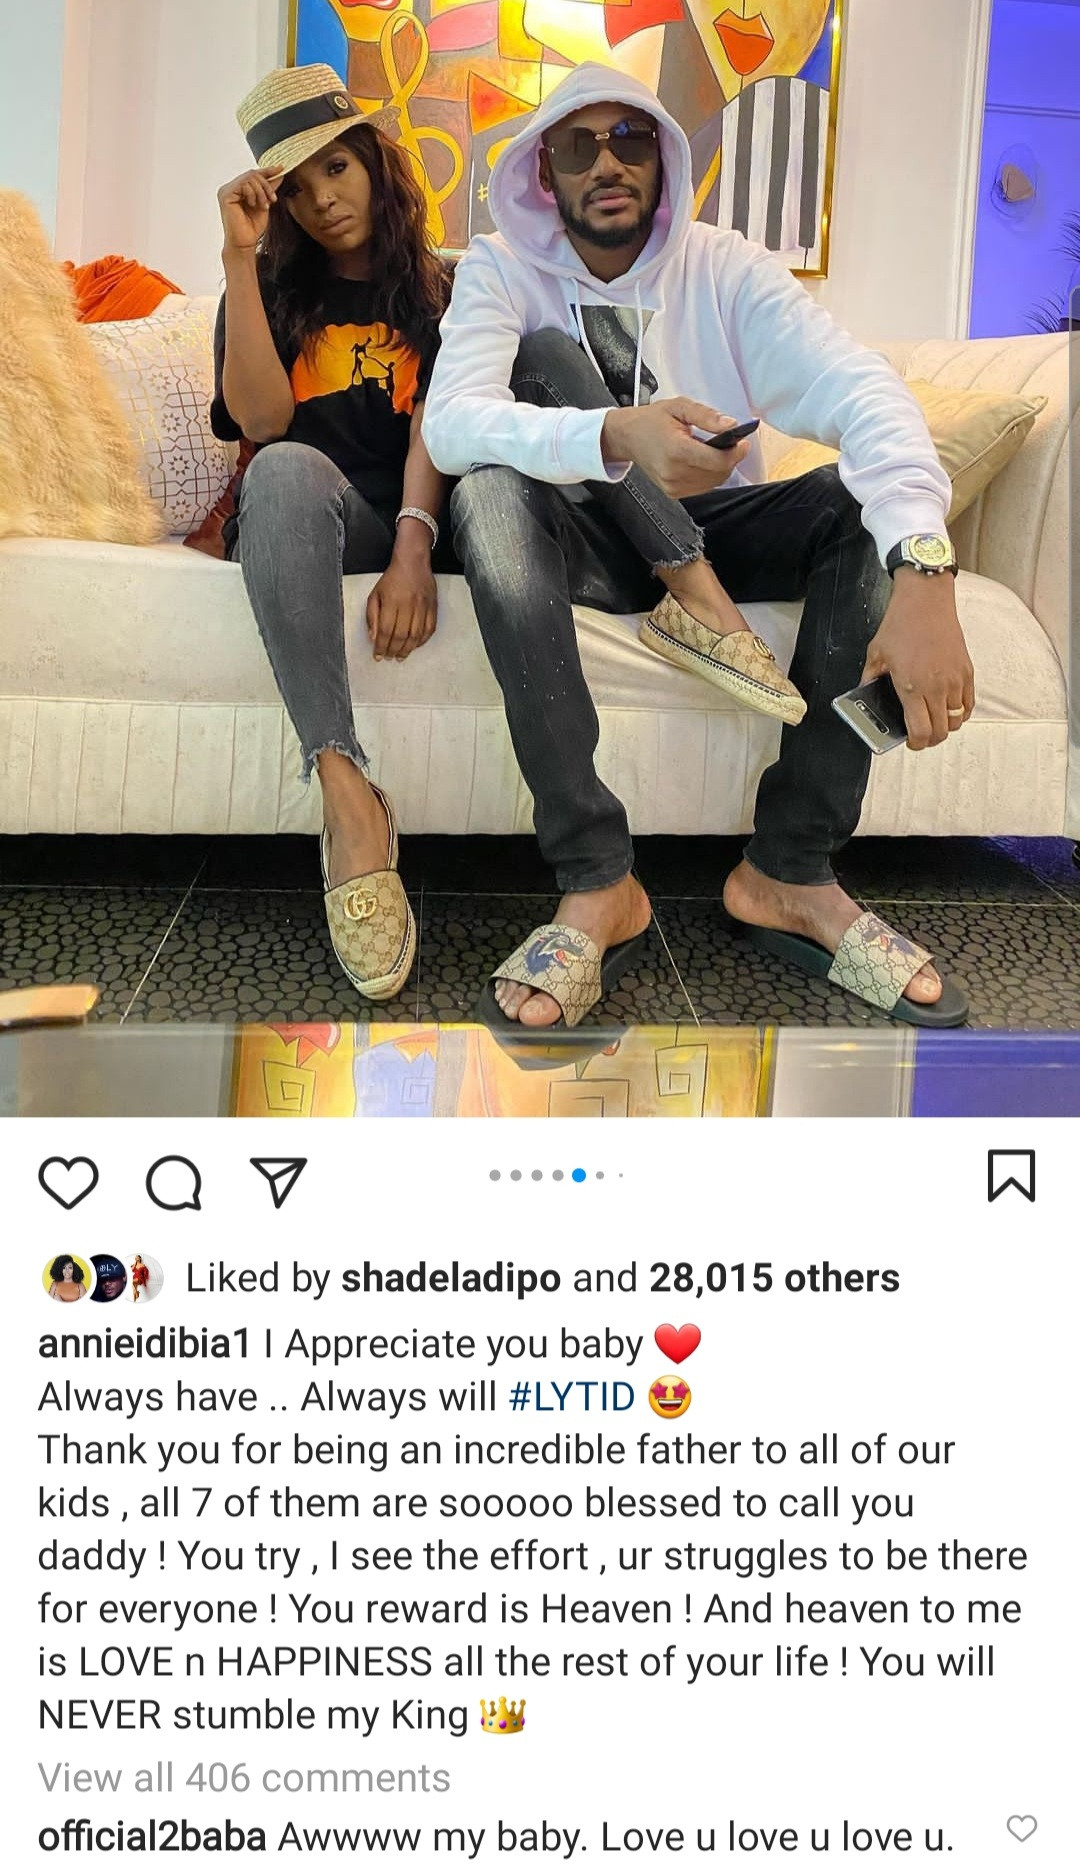 Annie Idibia praises Tuface for being an incredible father to all 7 of his kids after he paid a visit to his kids with Pero Adeniyi